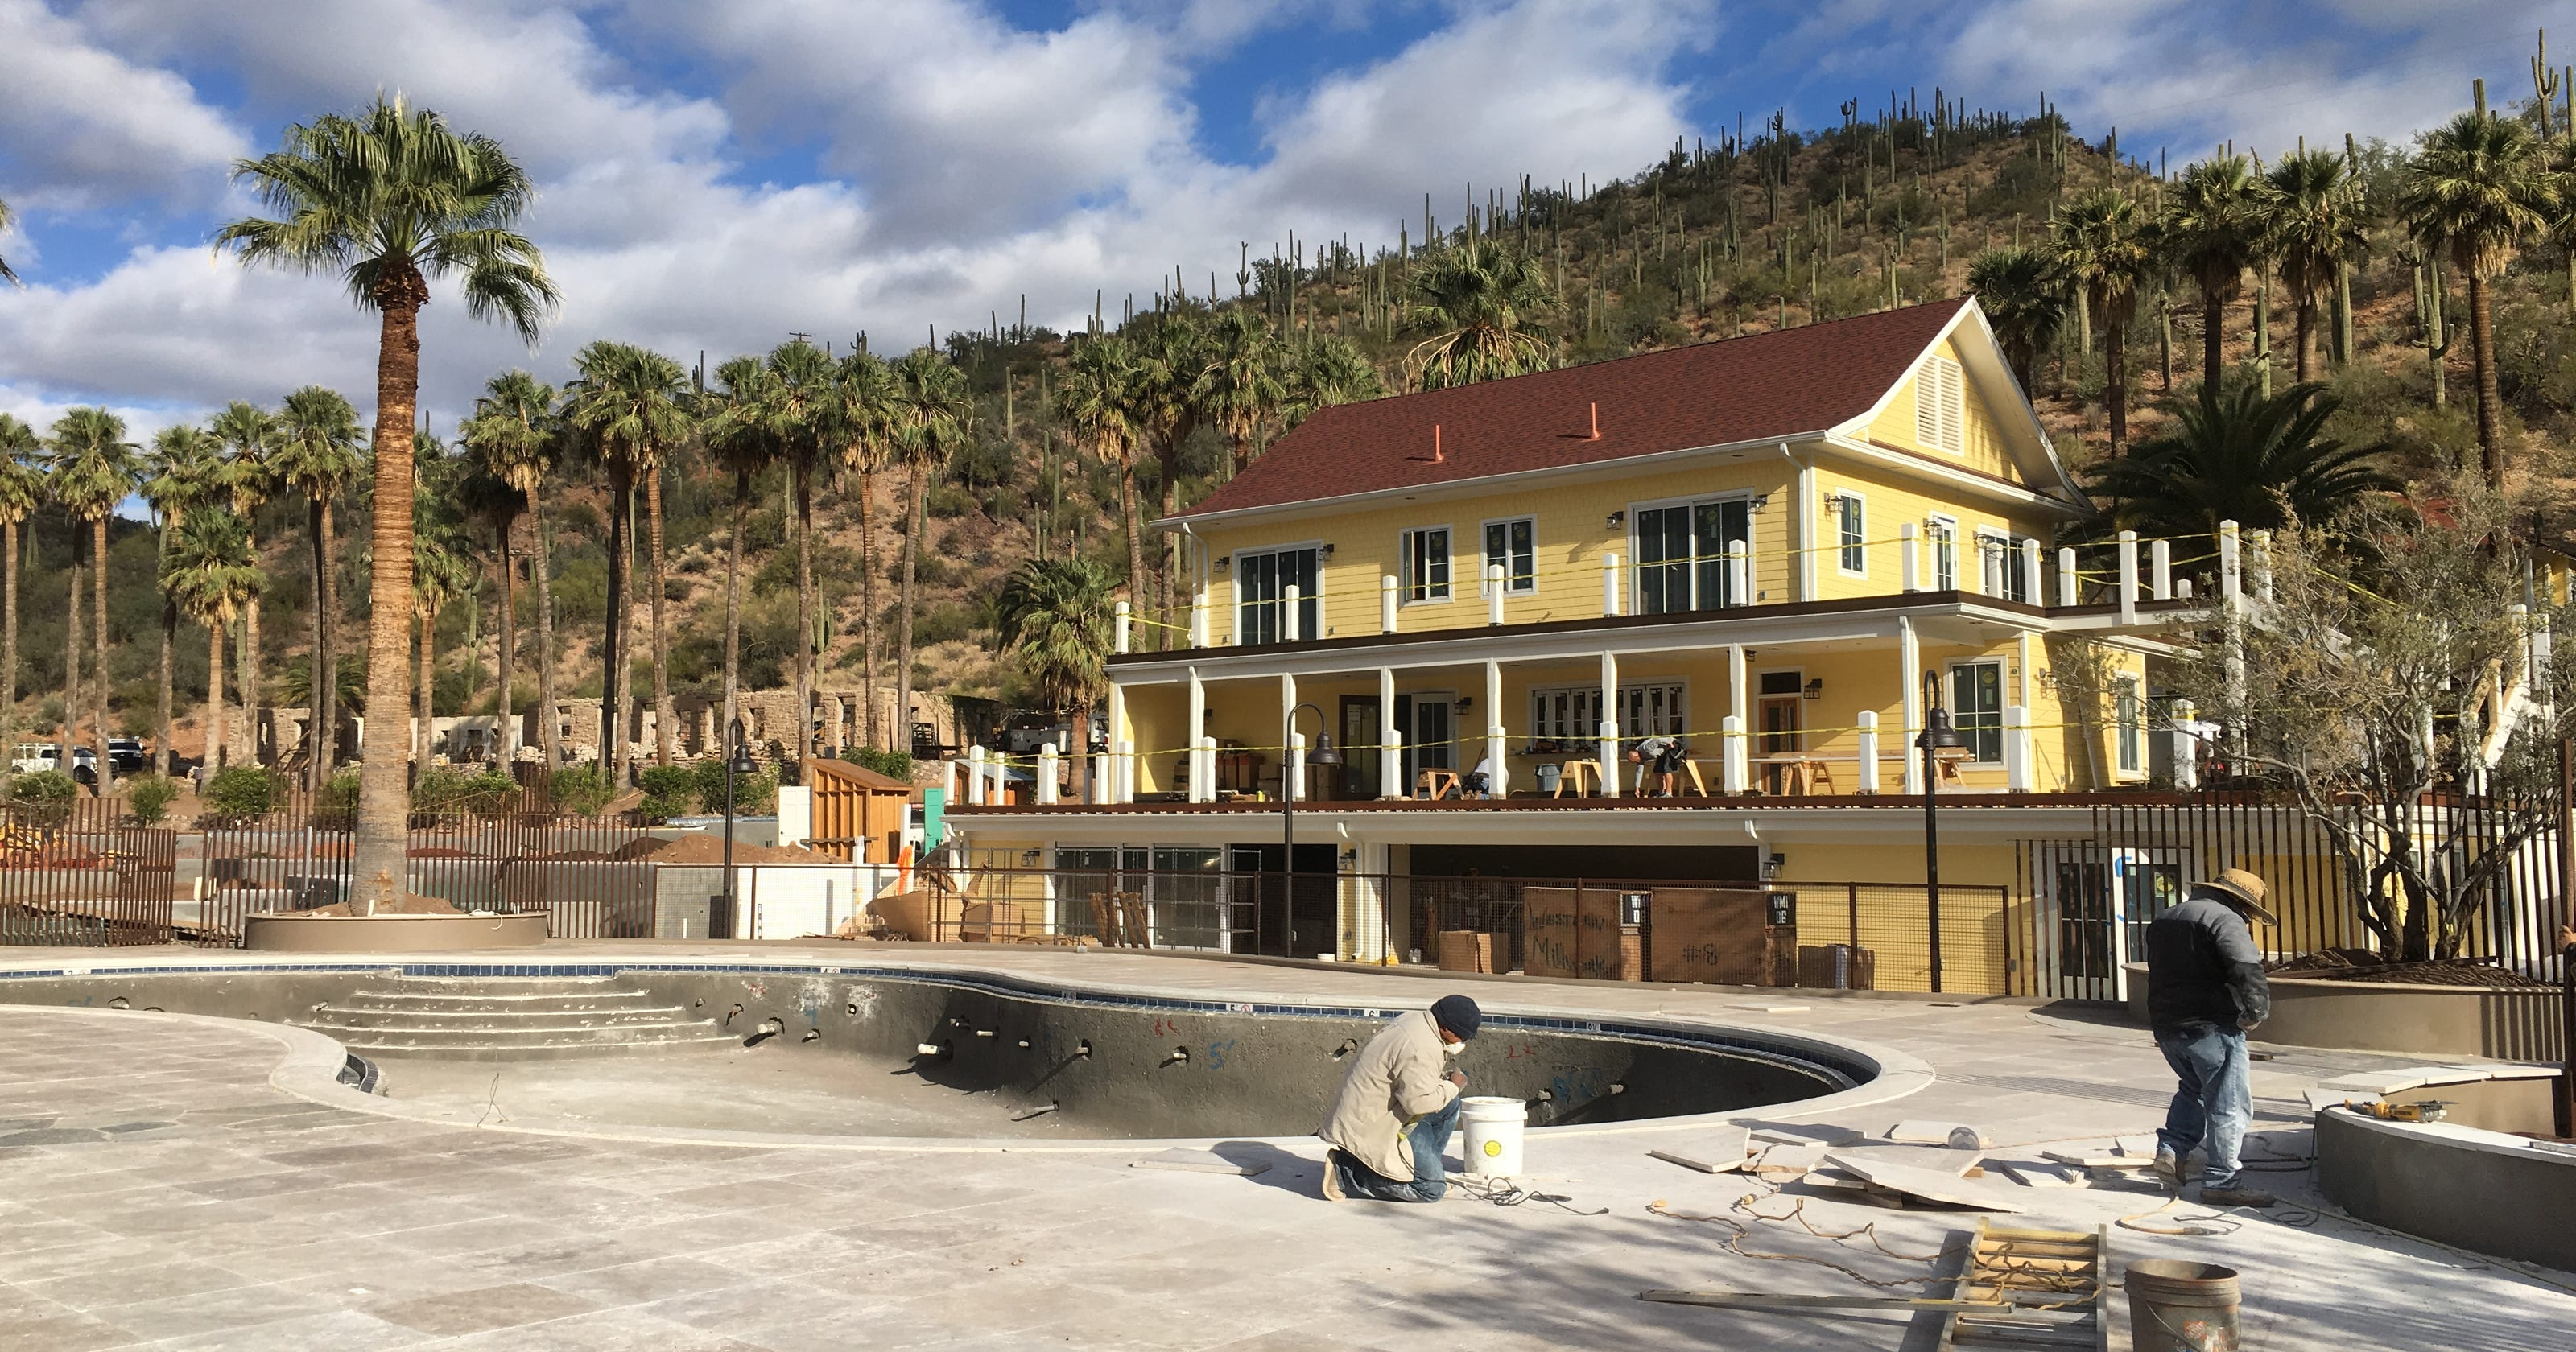 Castle Hot Springs historic Arizona hotel to open with new amenities